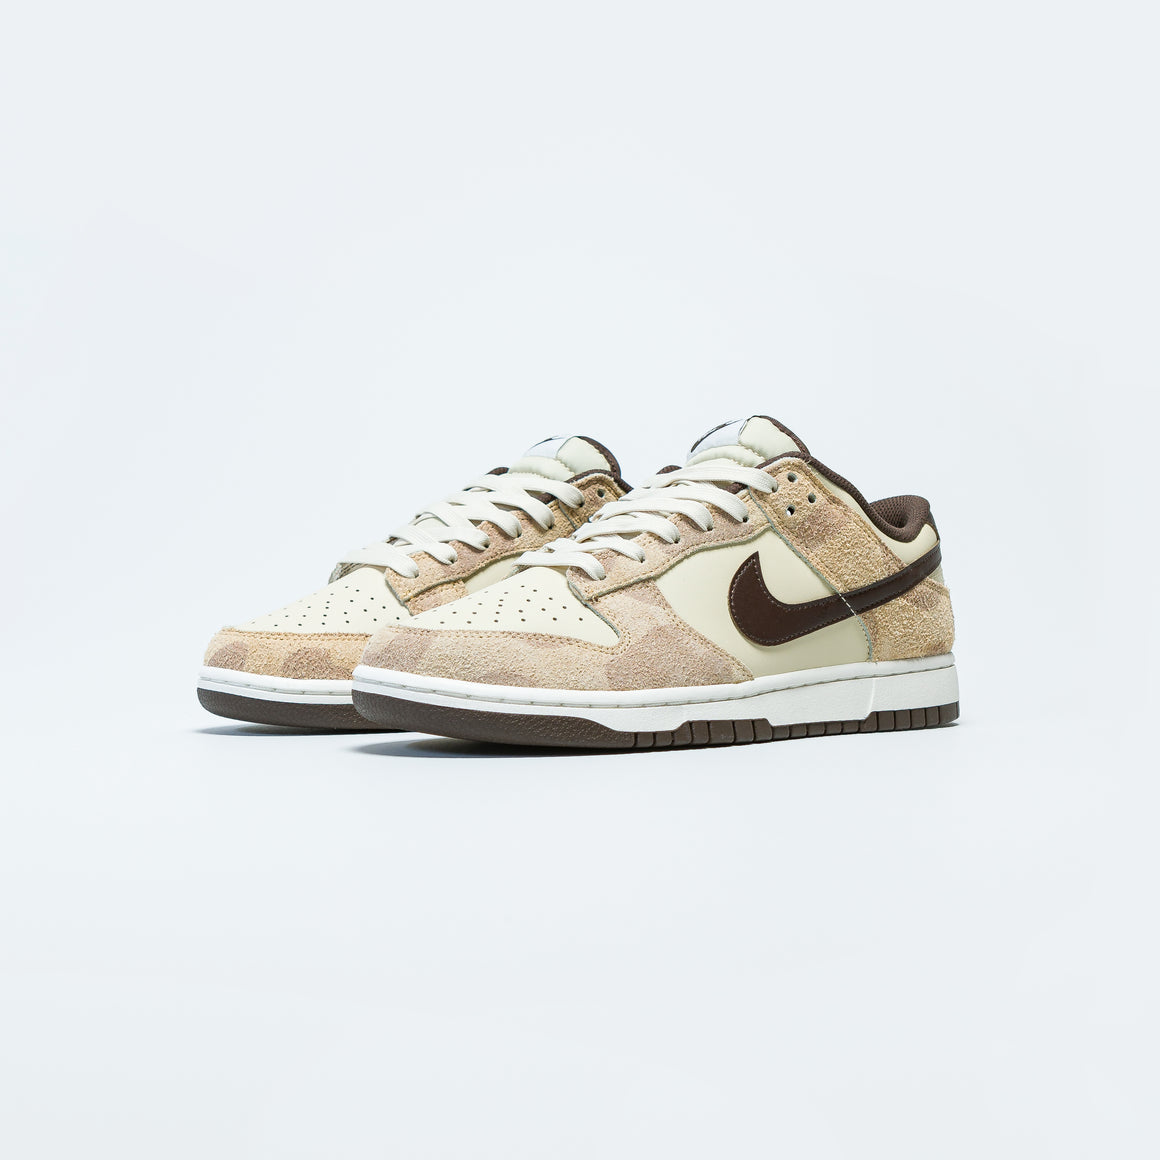 Nike - Dunk Low Retro PRM - Beach/Baroque Brown-Canvas-Sail - Up There